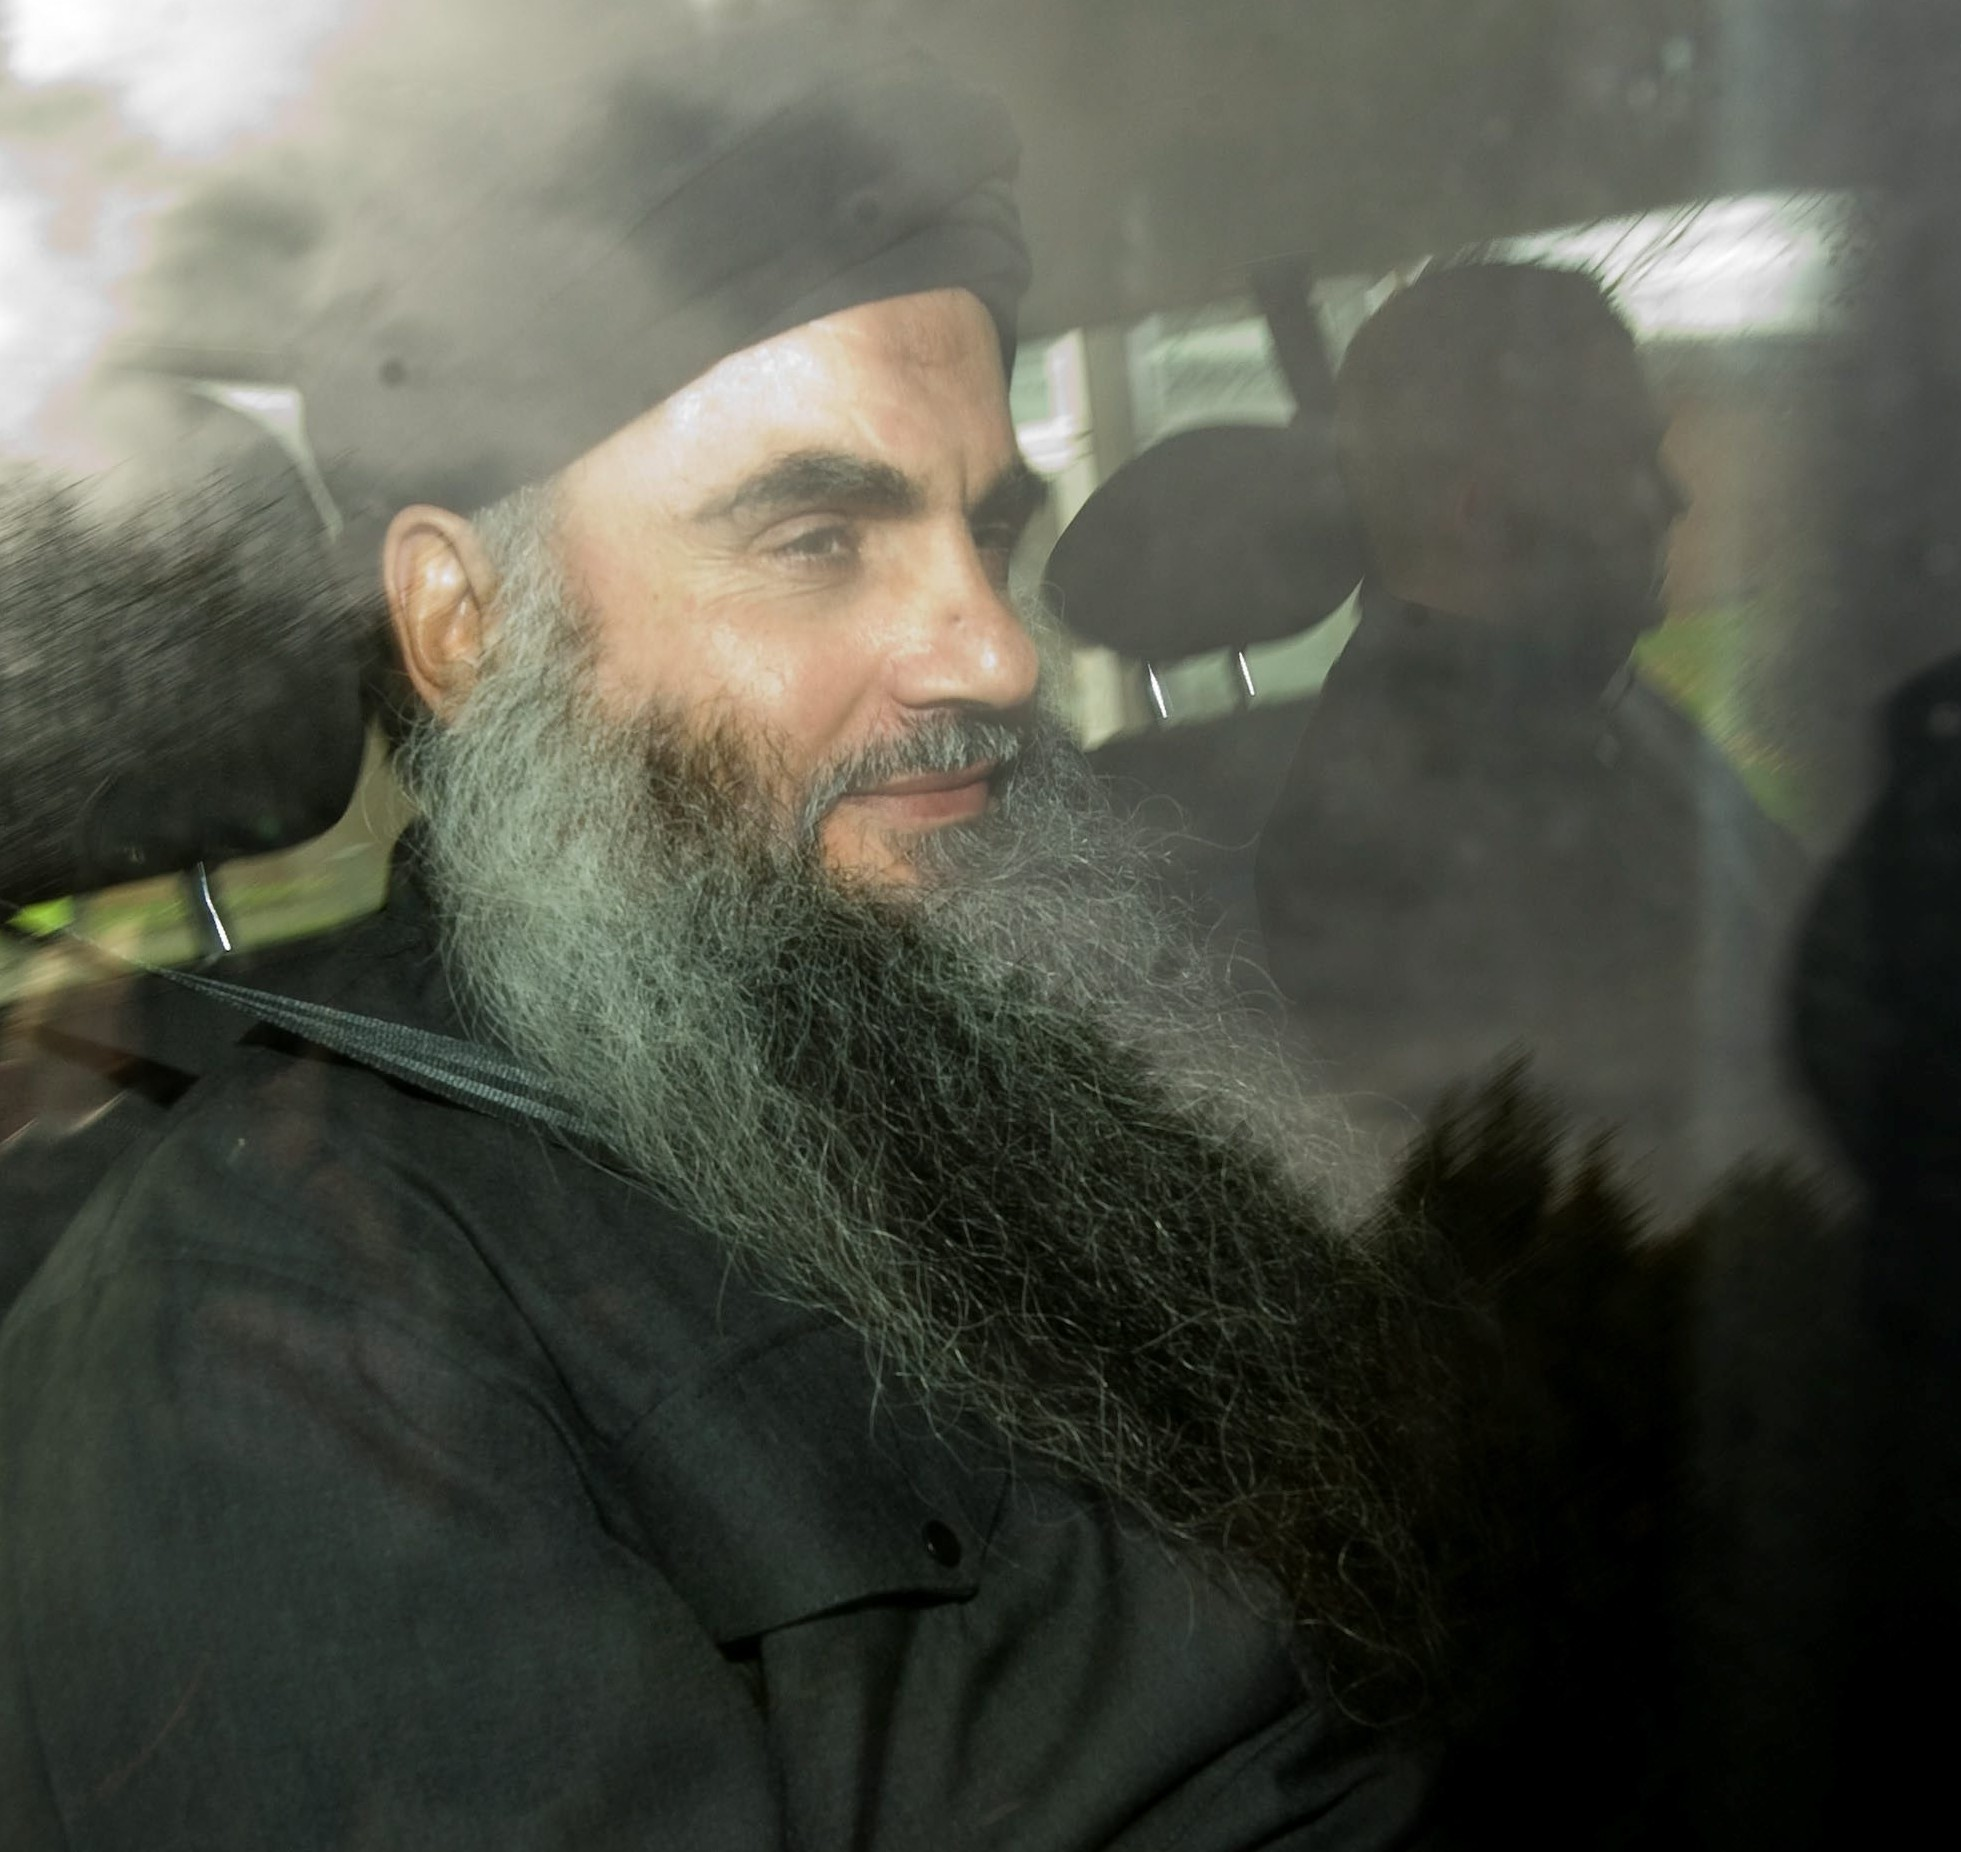 Radical Muslim cleric Abu Qatada is released on bail from Long Lartin high security prison in Worcestershire today